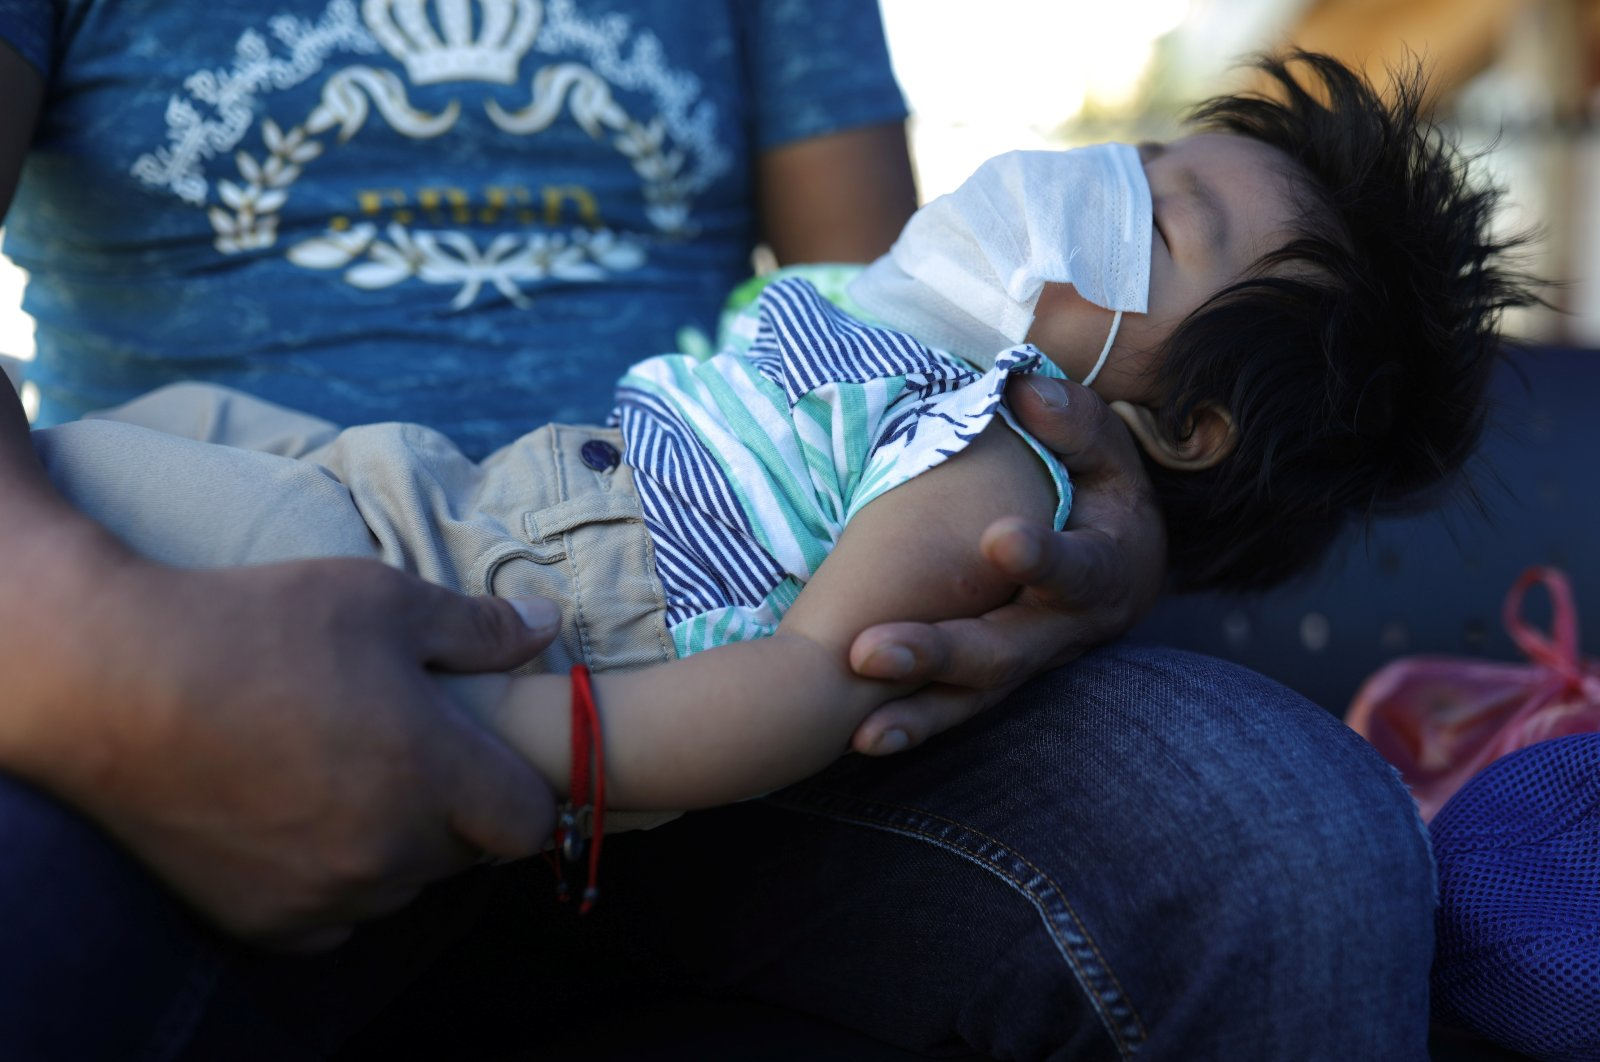 A man holds a baby wearing a protective mask during a quarantine following the outbreak of coronavirus disease (COVID-19), in Santiago, Chile, Wednesday, April 1, 2020. (Reuters Photo)